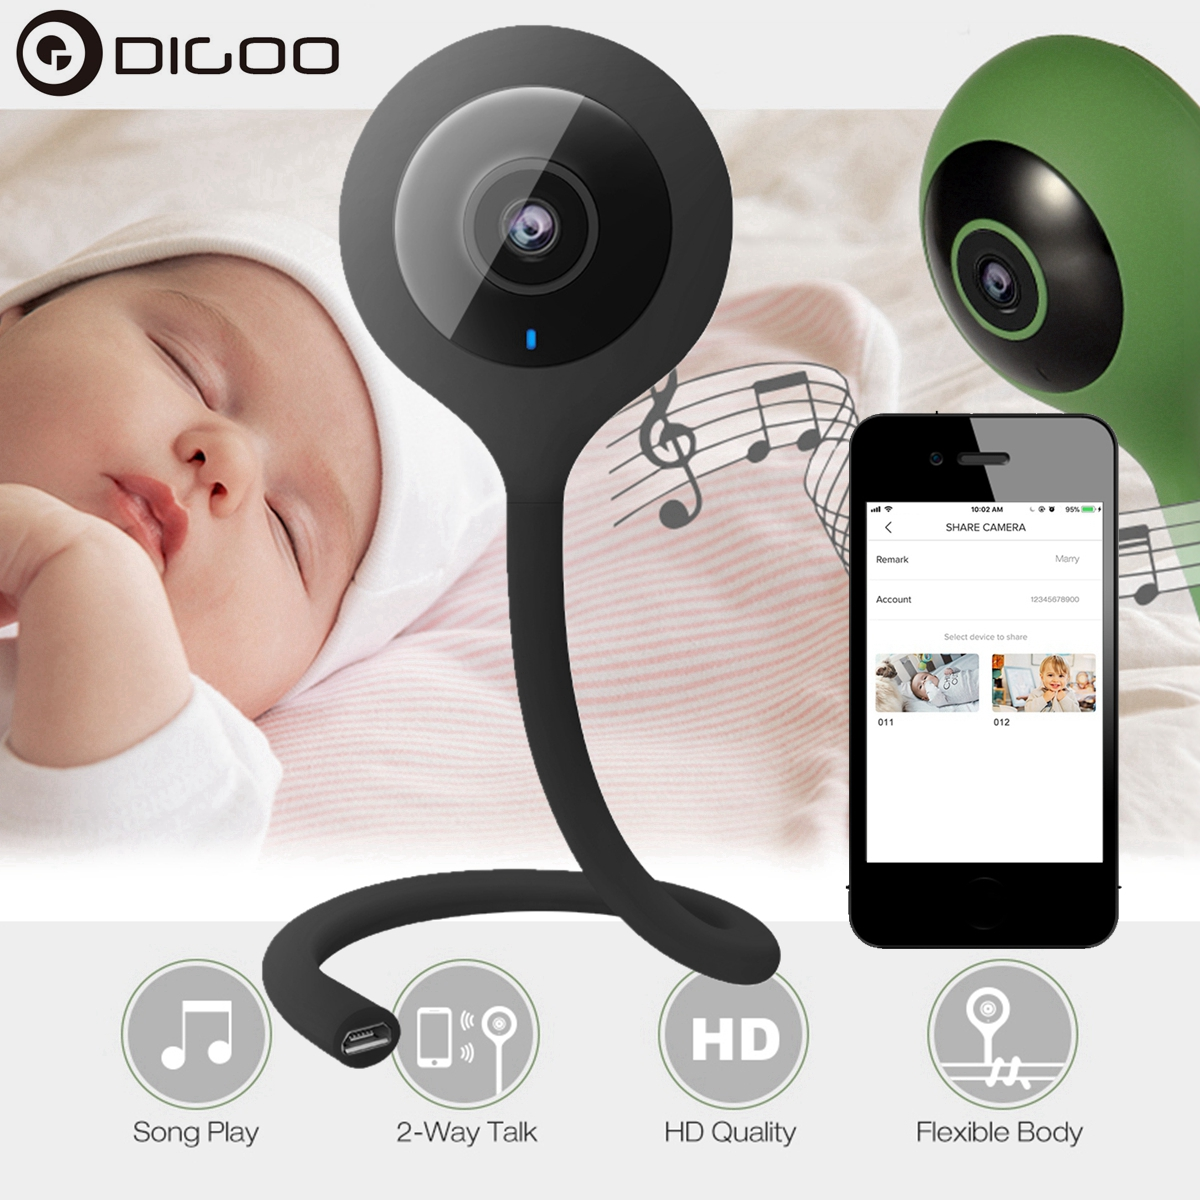 Digoo 720p HD WiFi Wireless Security IP Camera System with Night Vision and Two Way Audio Baby Monitor